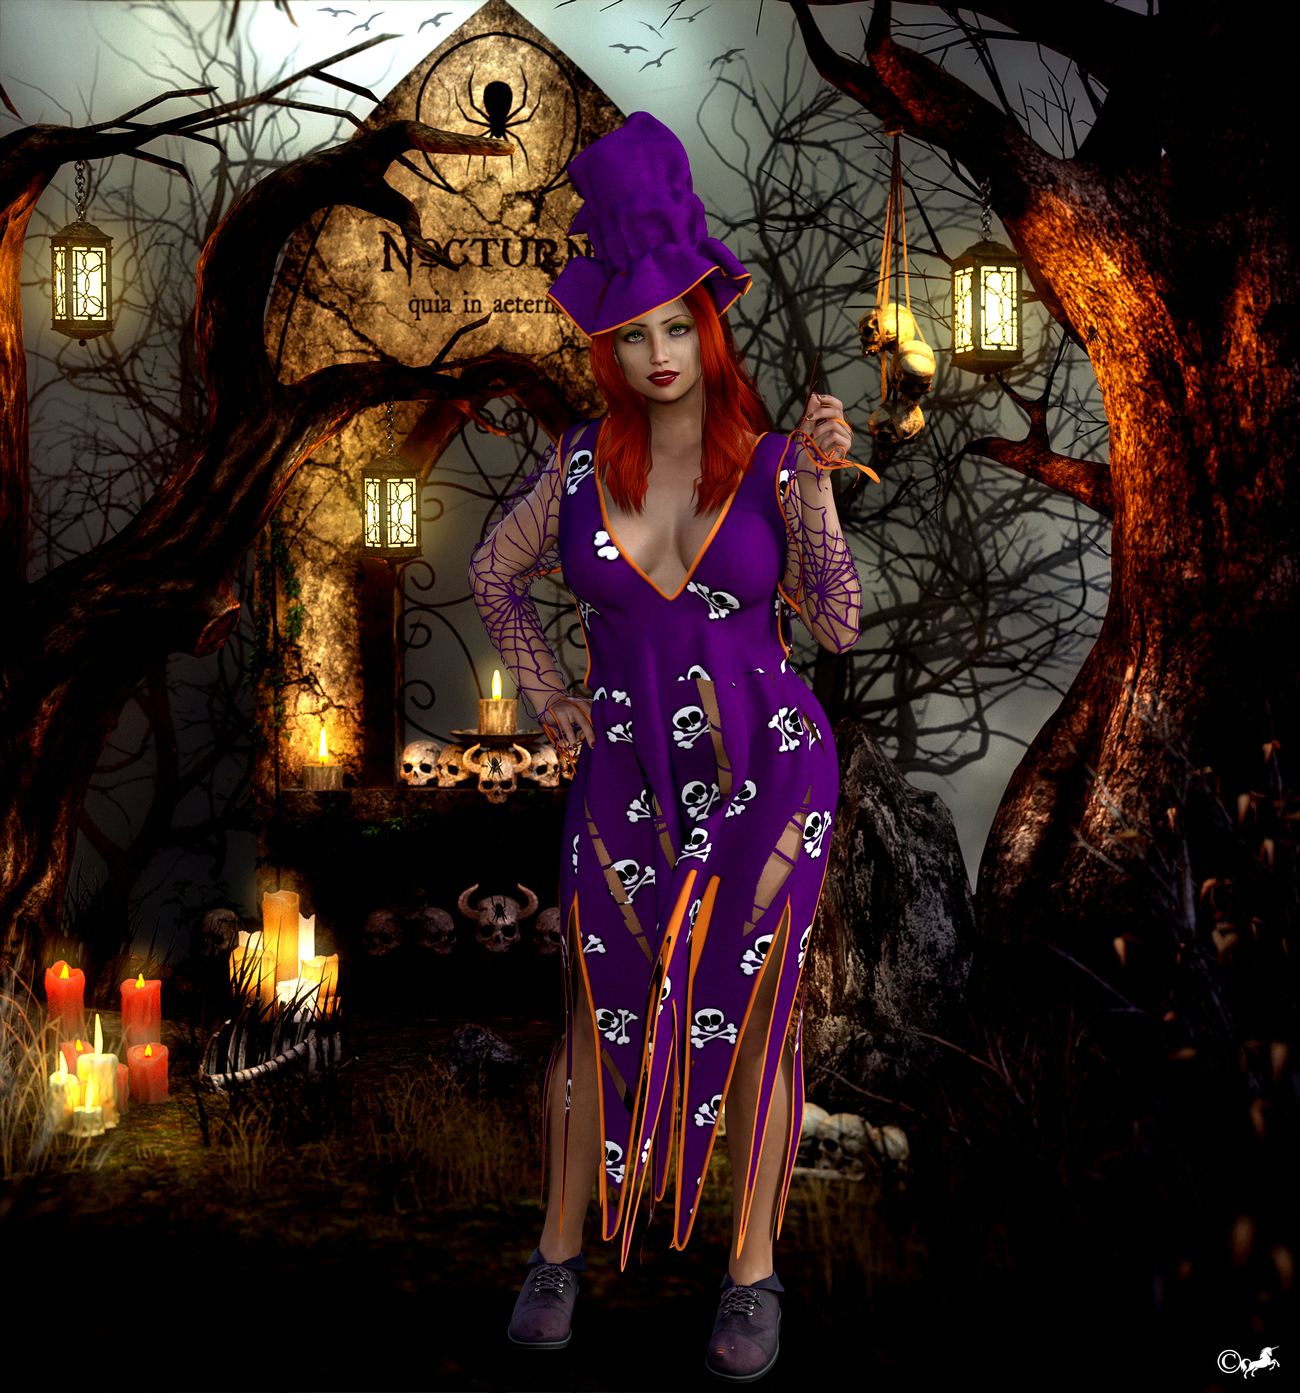 DAZ 881 or only 8 days until Halloween. by miwi